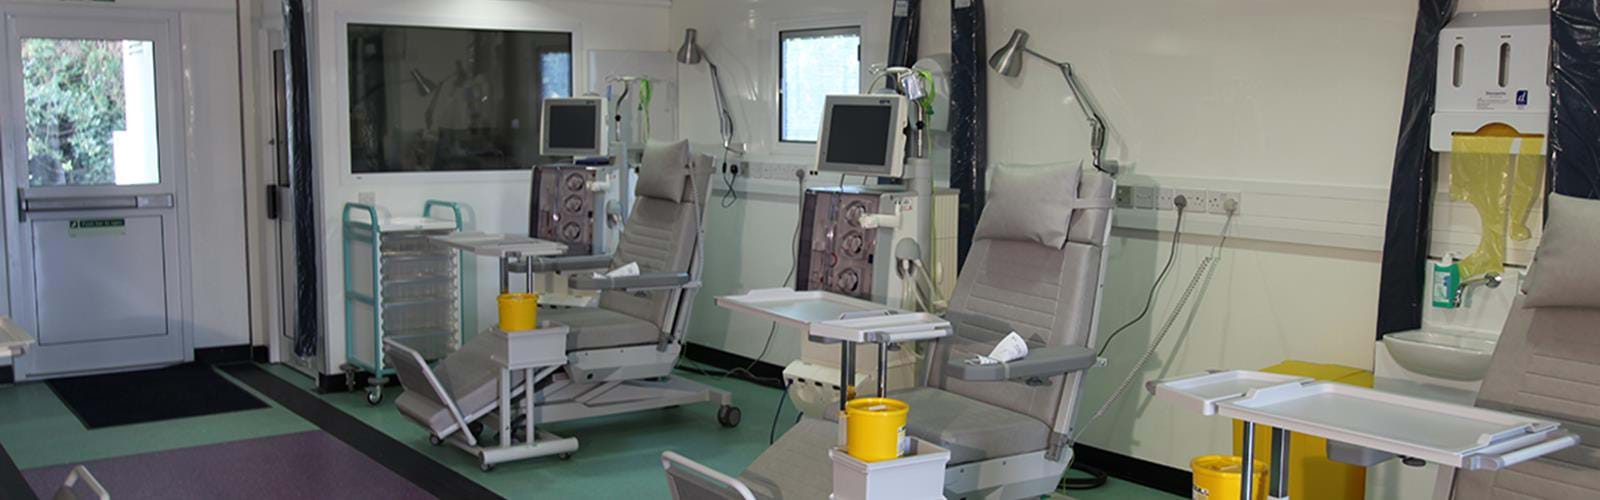 Mobile Renal Dialysis Unit NHS Wales (2)